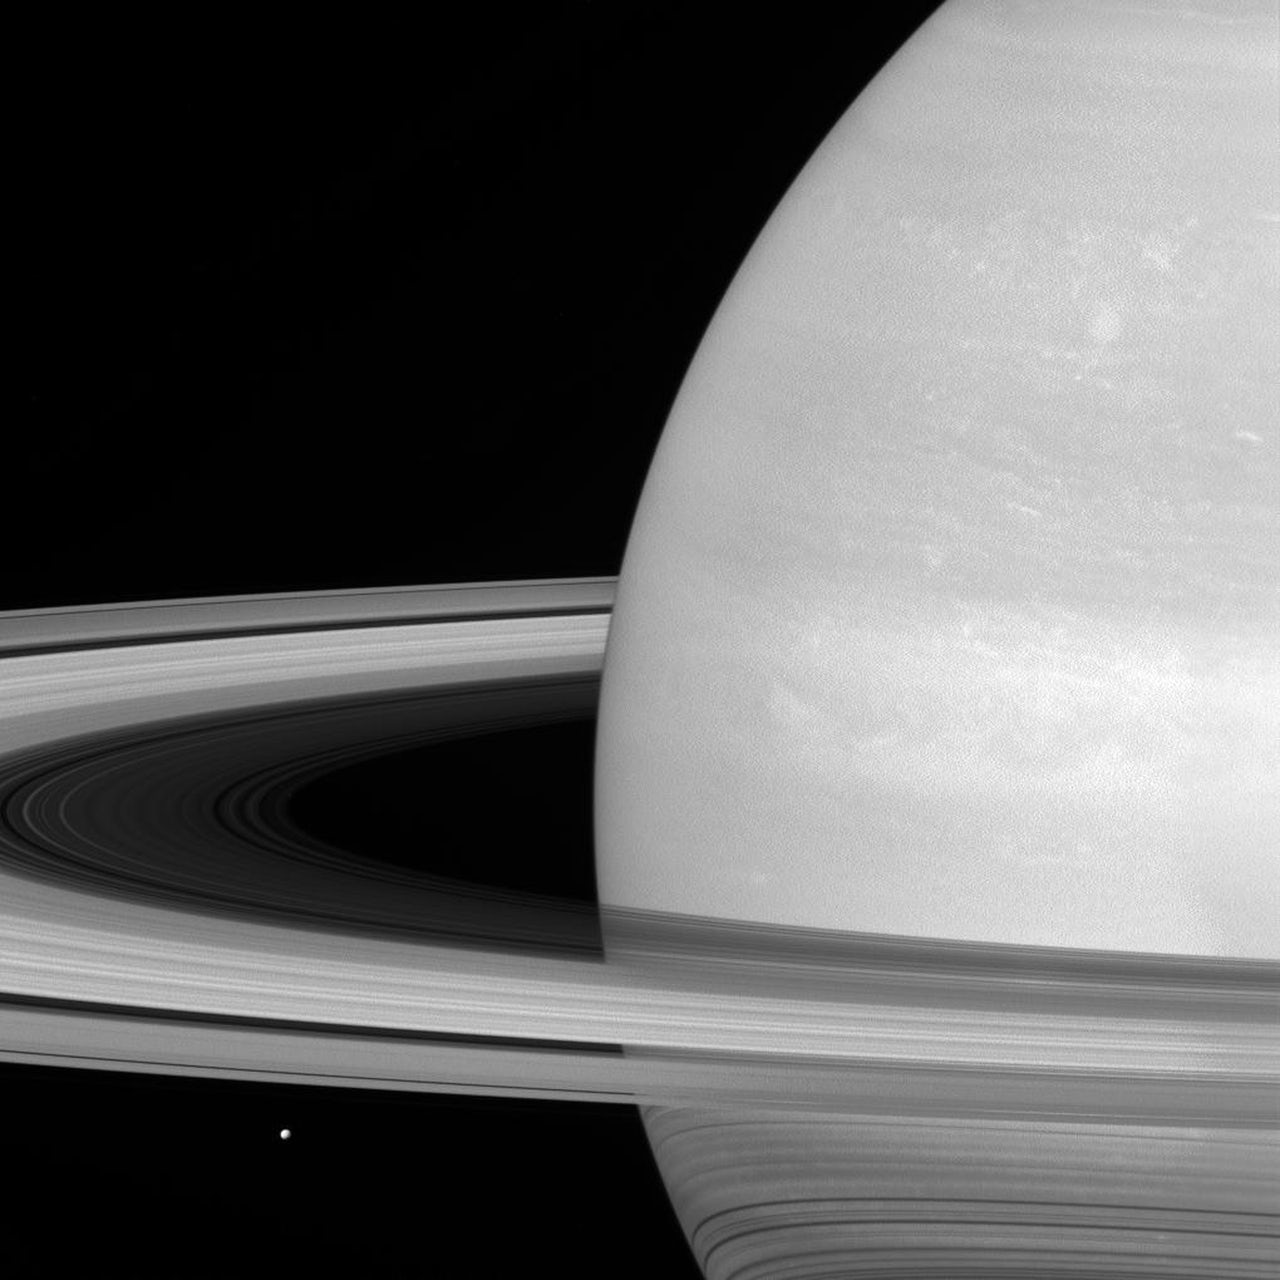 Saturn's rings, which are made of small, icy particles spread over a vast area, are generally no thicker than the height of a house.